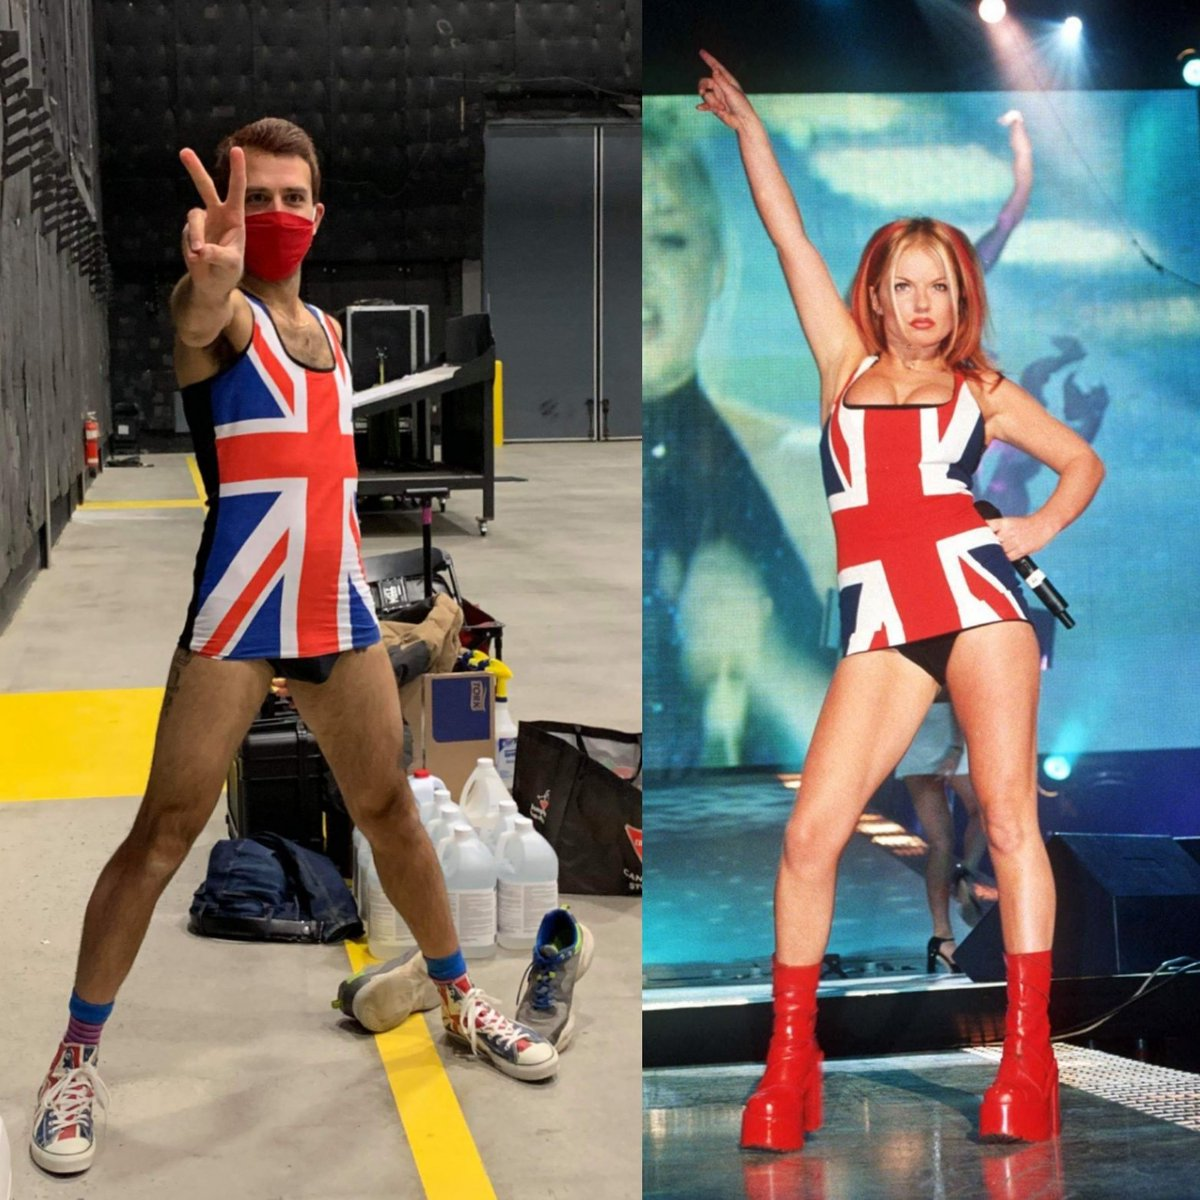 Halloween is a time to pay tributes to our idols sometime. #Halloween @GeriHalliwell  #unionjack #uk #unitedkingdom #unionjackdress @spicegirls #spicegirls https://t.co/QzpkhwHuaq